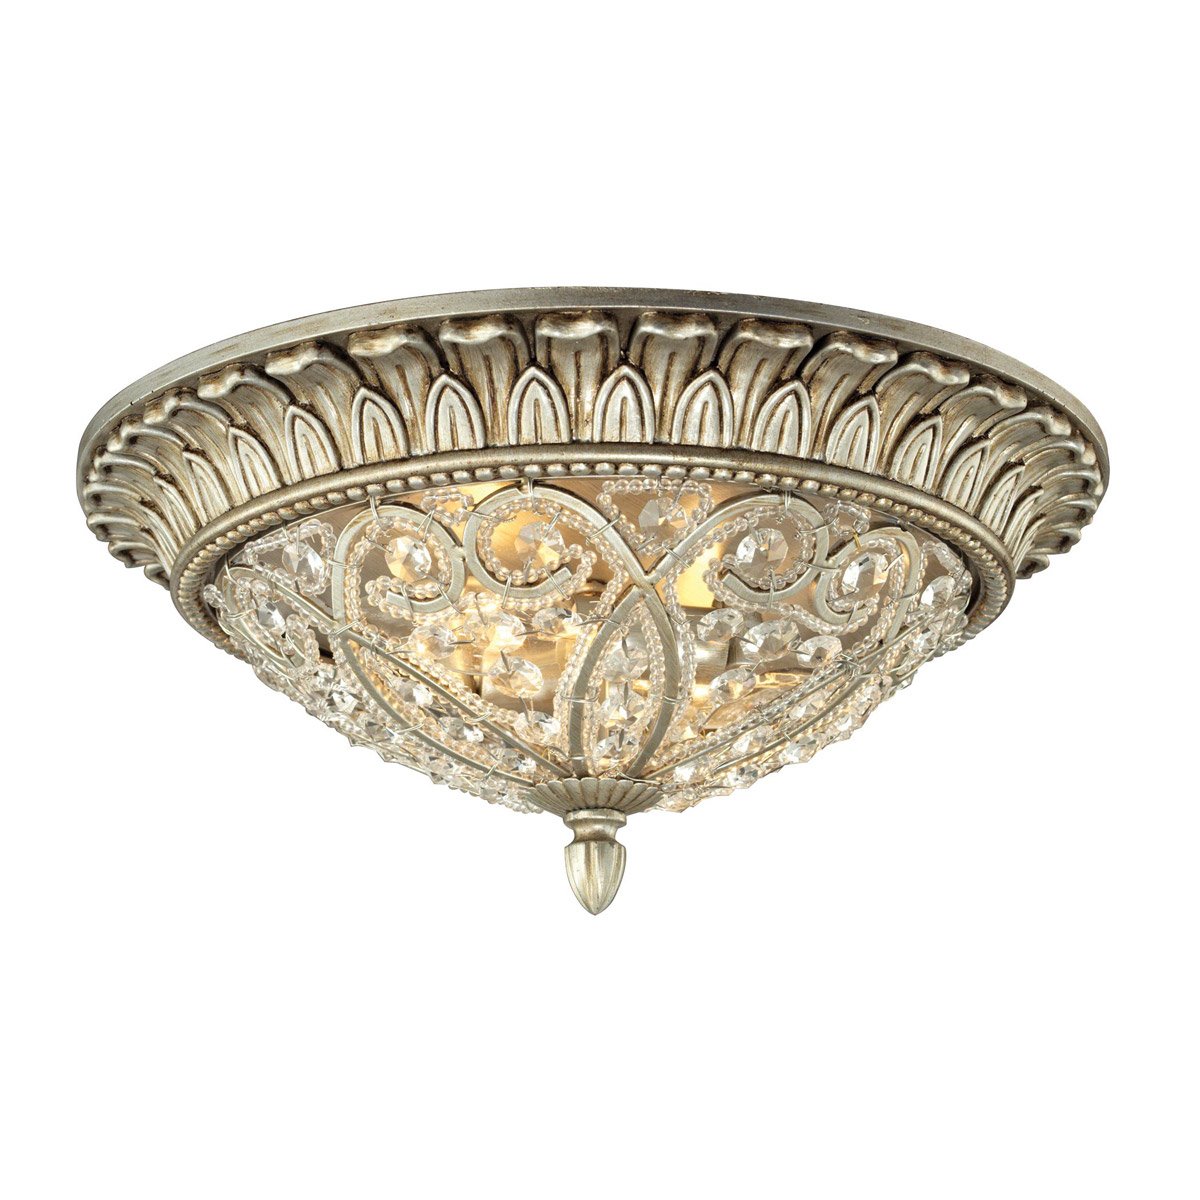 Andalusia 116932 ELK lighting flush mount lighting Brooklyn, New York - Accentuations Brand